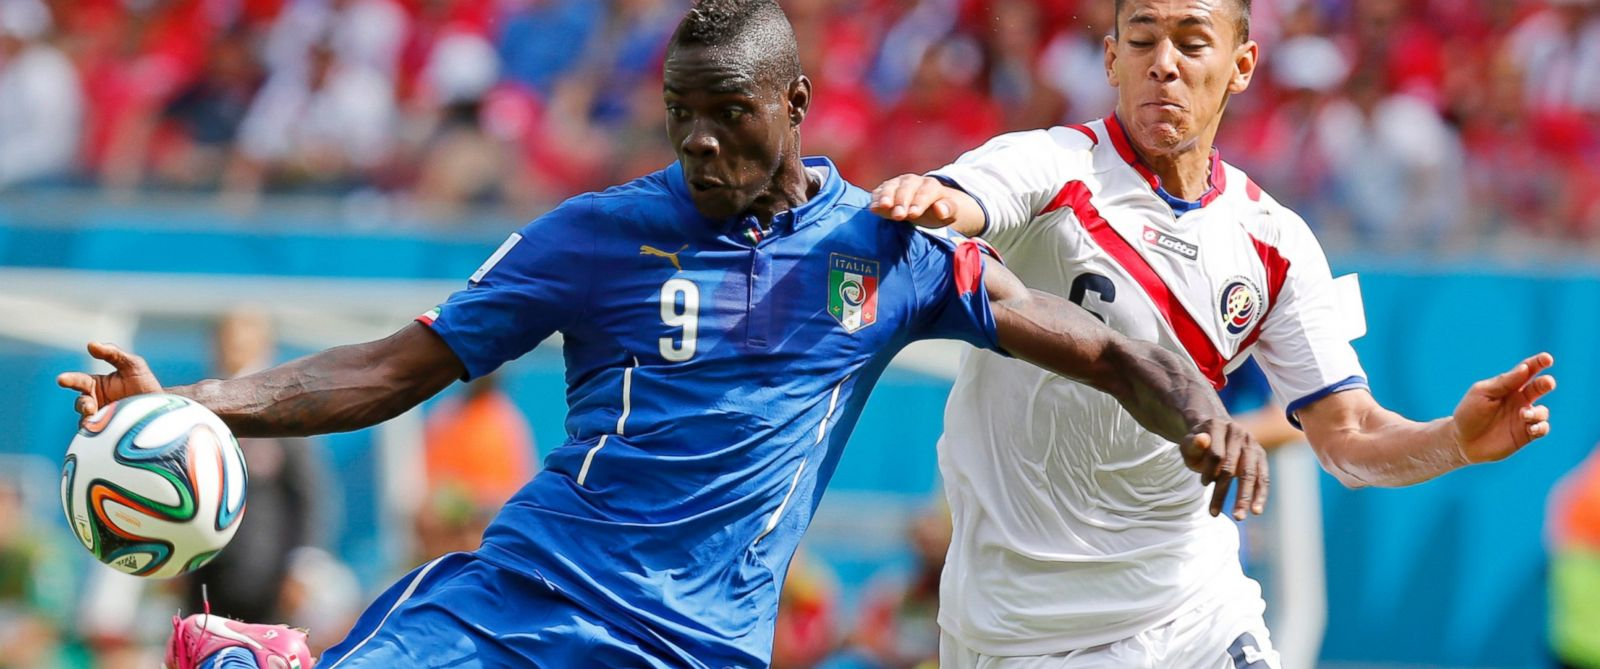 PHOTO: Italys Mario Balotelli, left, gets in a shot despite the challenge of Costa Ricas Oscar Duarte during the group D World Cup soccer match between Italy and Costa Rica at the Arena Pernambuco in Recife, Brazil, June 20, 2014.